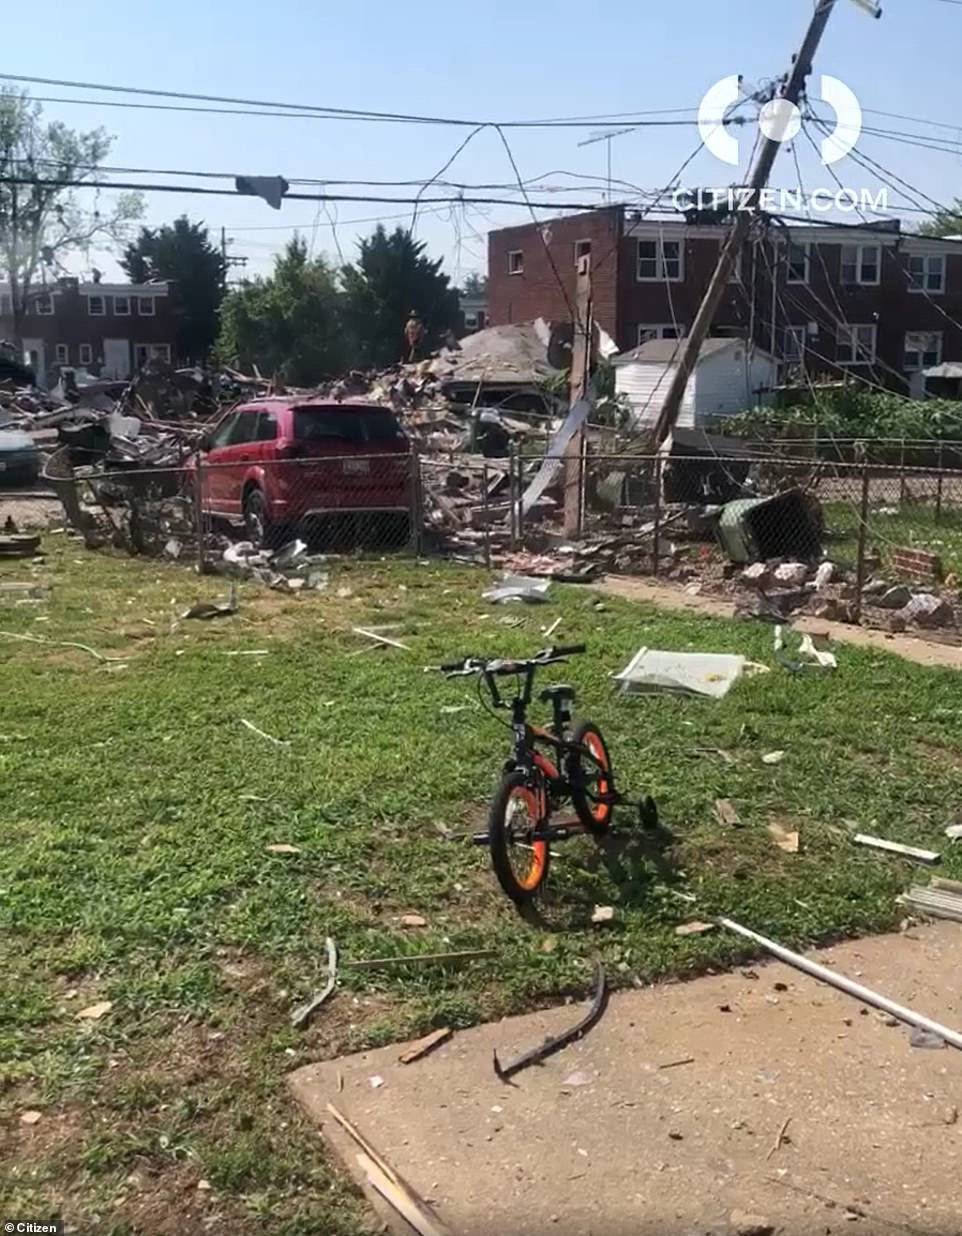 Three homes near Reisterstown Road in Baltimore were destroyed in an explosion Monday morning